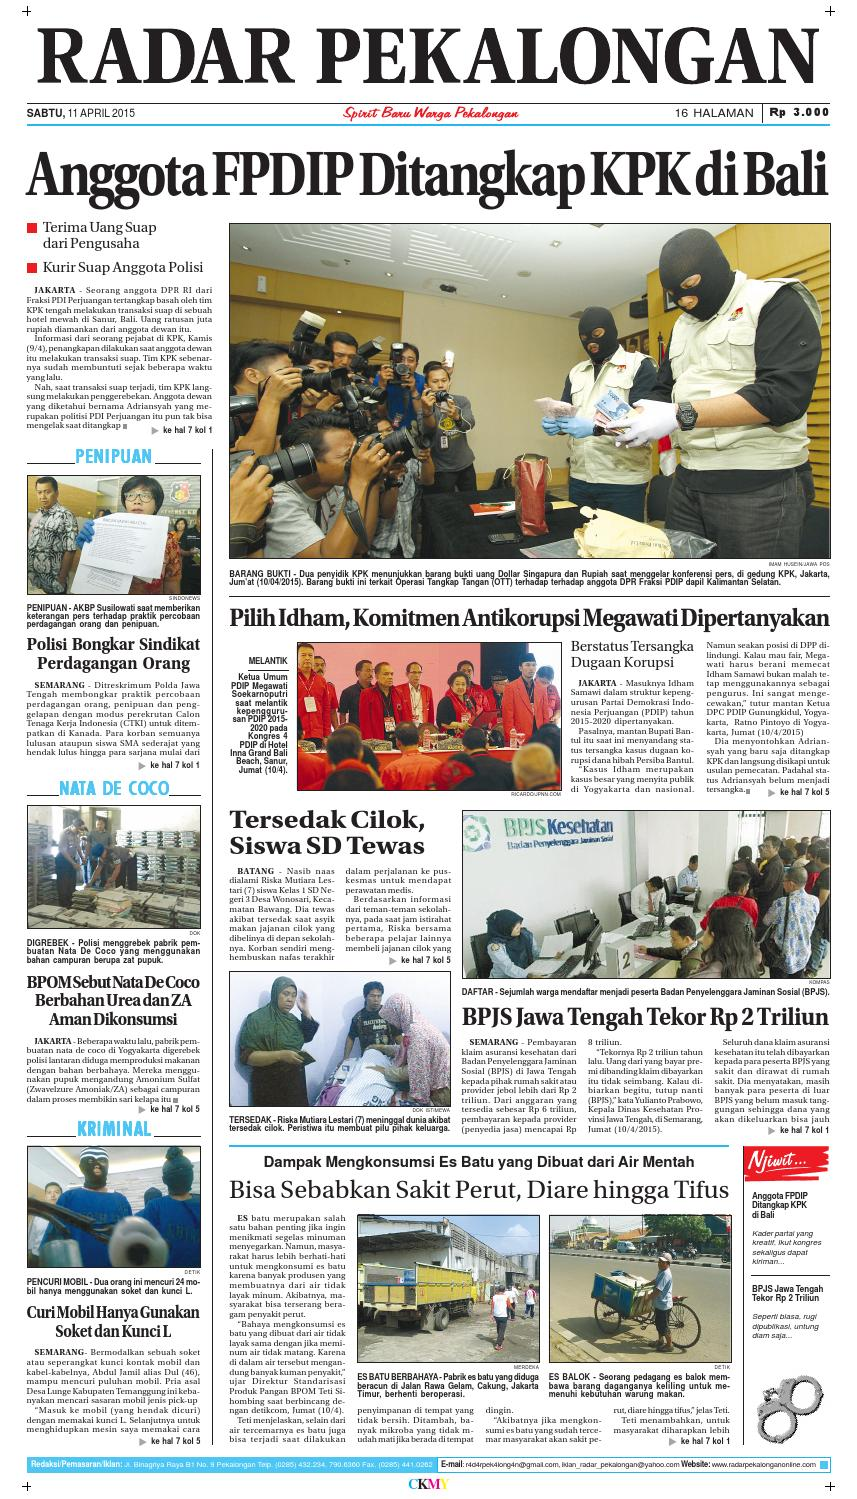 Radar pekalongan 11 april 2015 by Radar Pekalongan - issuu 41ebf1d484